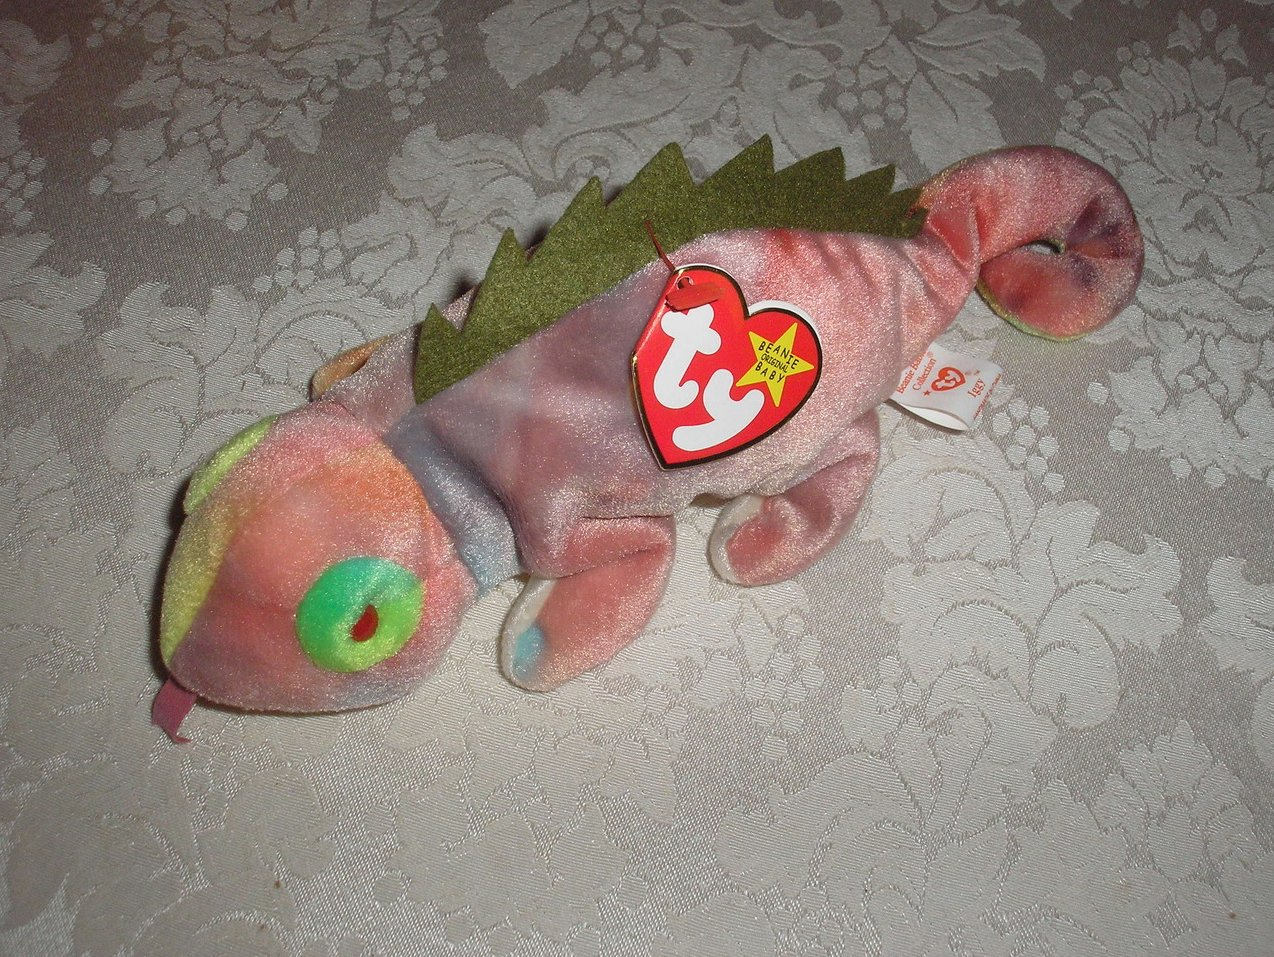 Ty Original Beanie Baby Iggy Iguana with tongue August 12, 1997